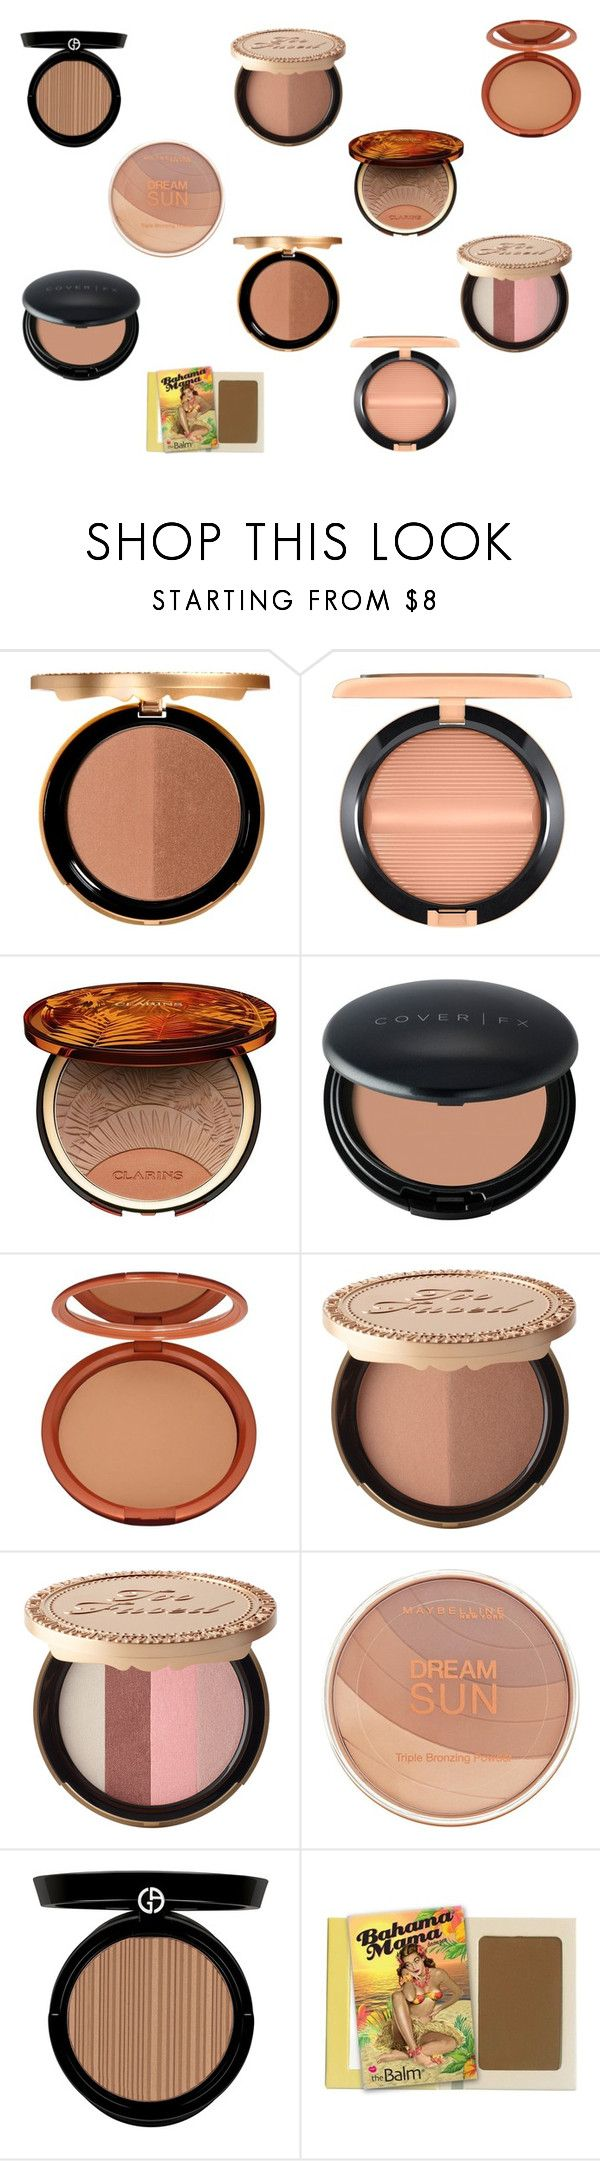 """""""Current fav bronzers"""" by tyronewelle ❤ liked on Polyvore featuring beauty, Too Faced Cosmetics, MAC Cosmetics, Clarins, Cover FX, Estée Lauder, Maybelline and Giorgio Armani"""